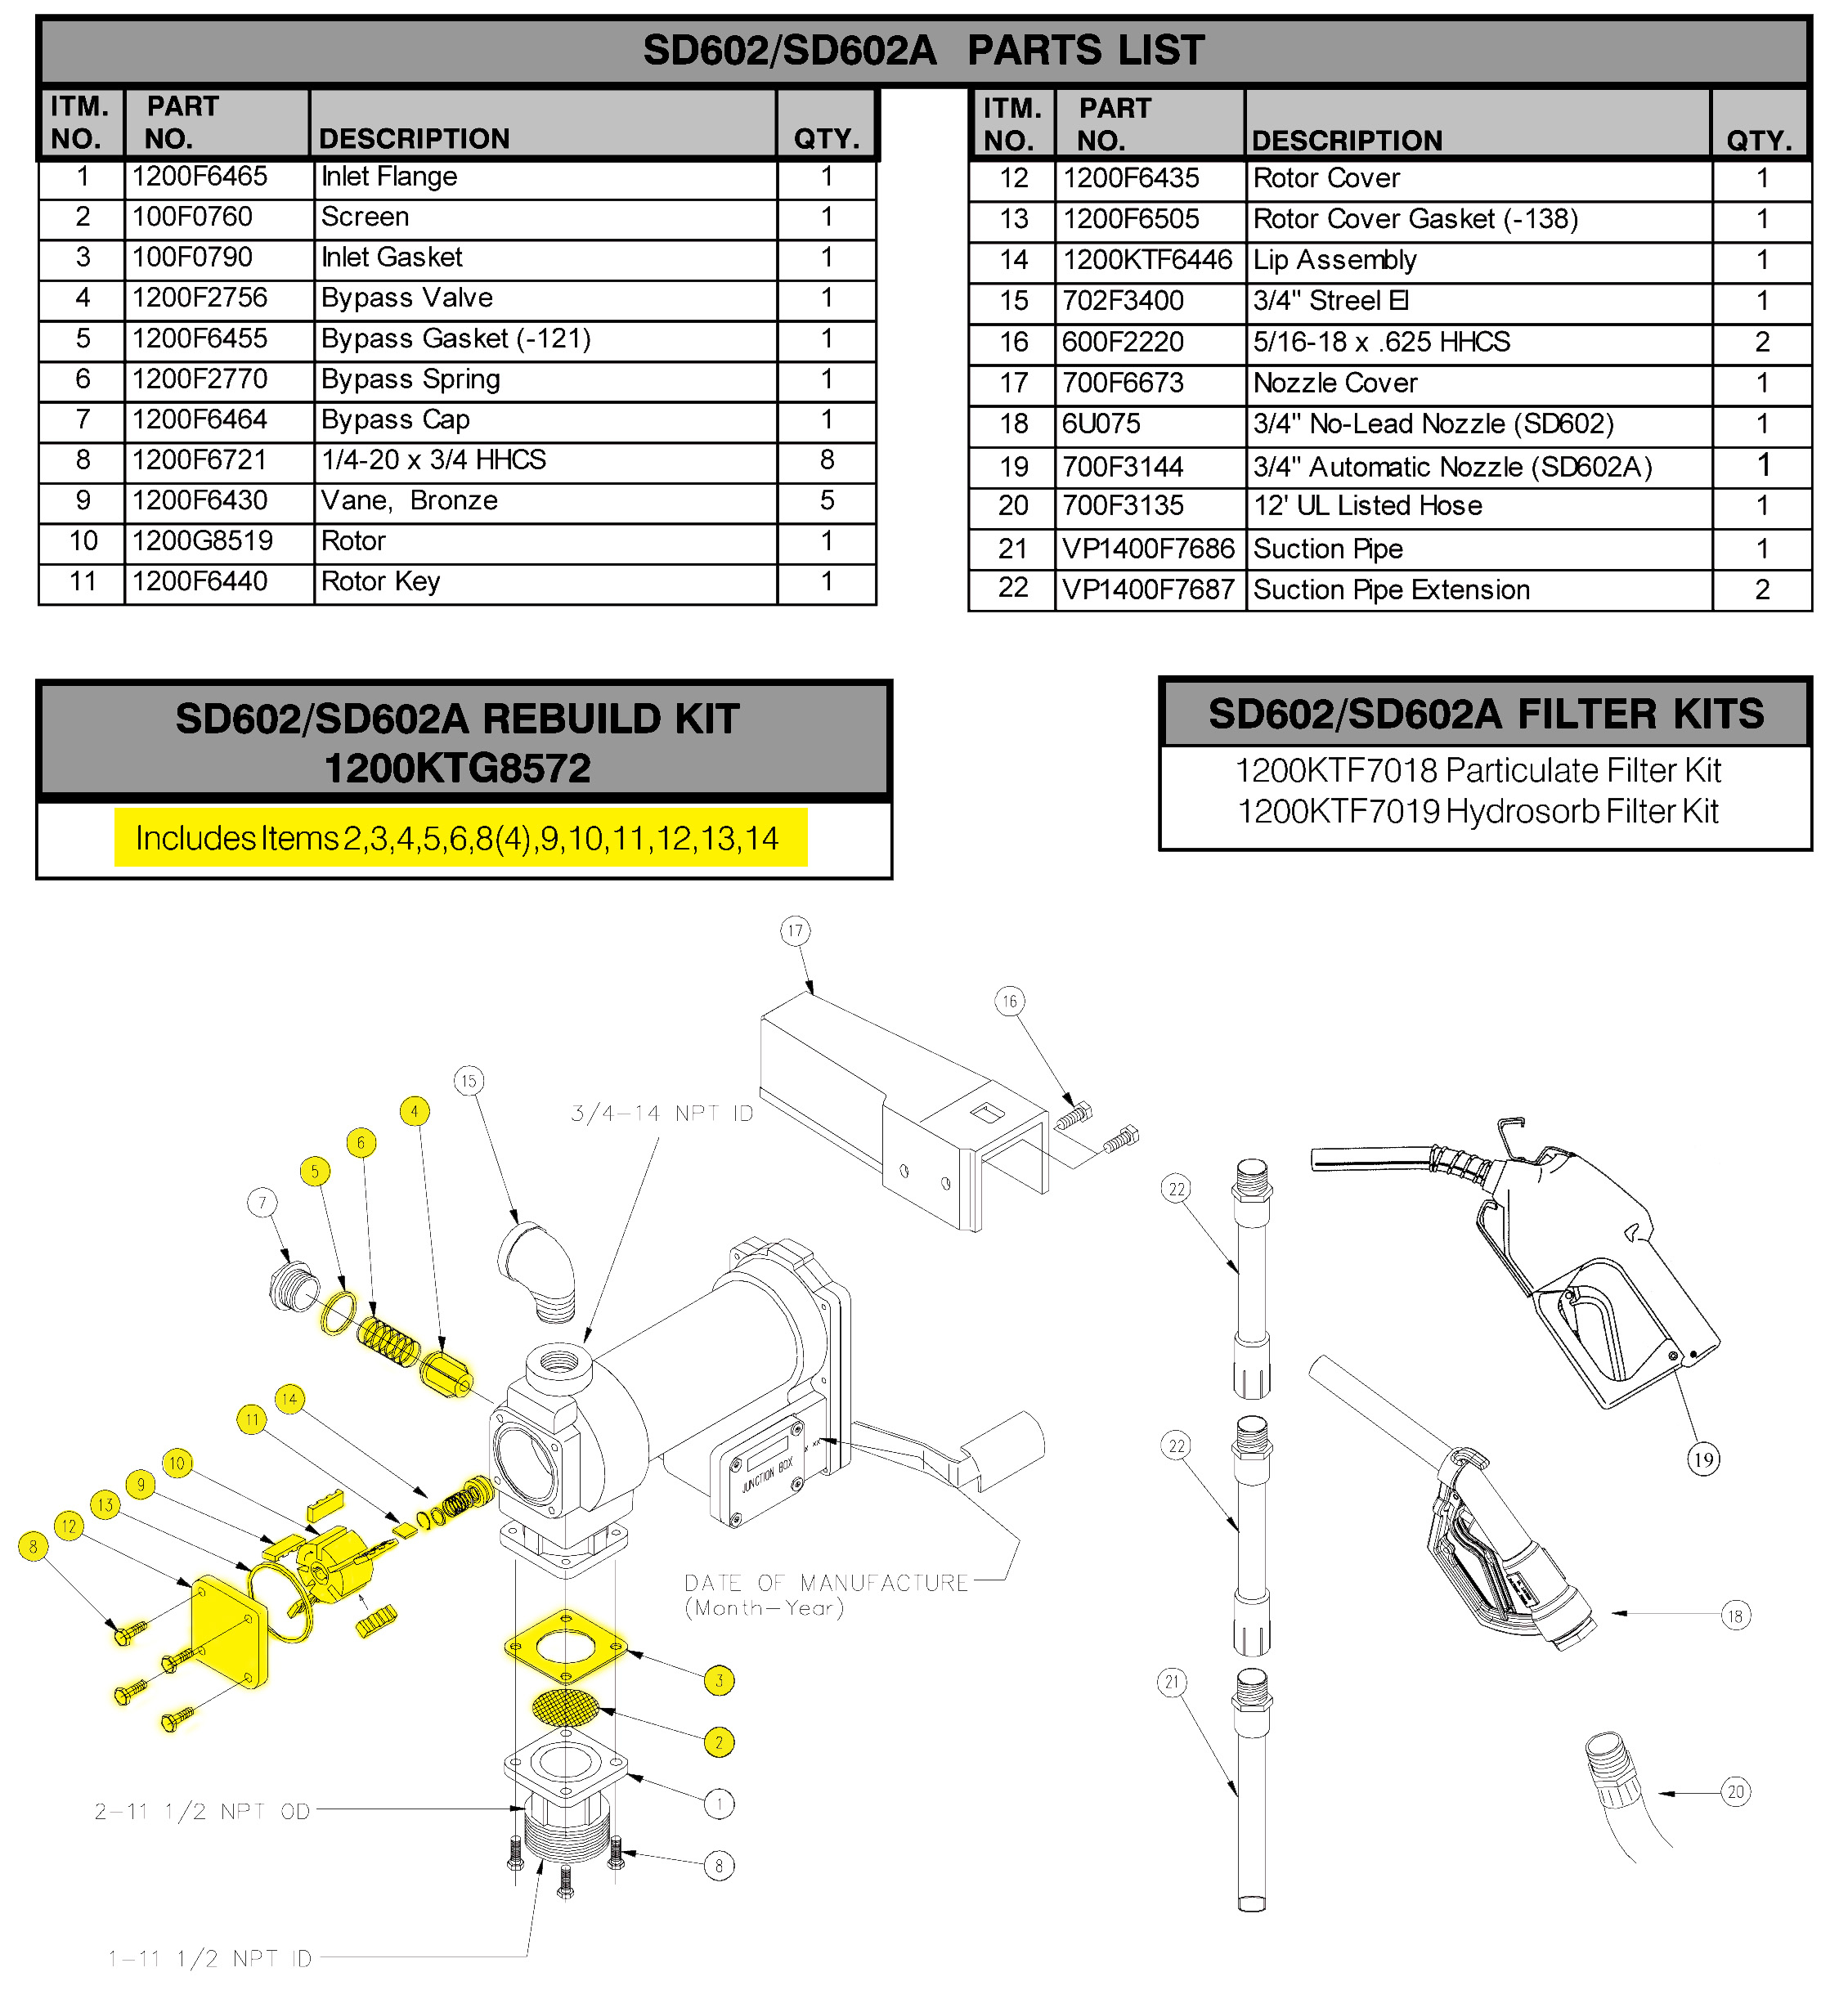 gpi fuel pump wiring diagram Collection-Fill Rite 1200ktg8572 Rebuild Kit Parts Diagram Fill Fuel Pump Wiring Diagram Full Size 8-l